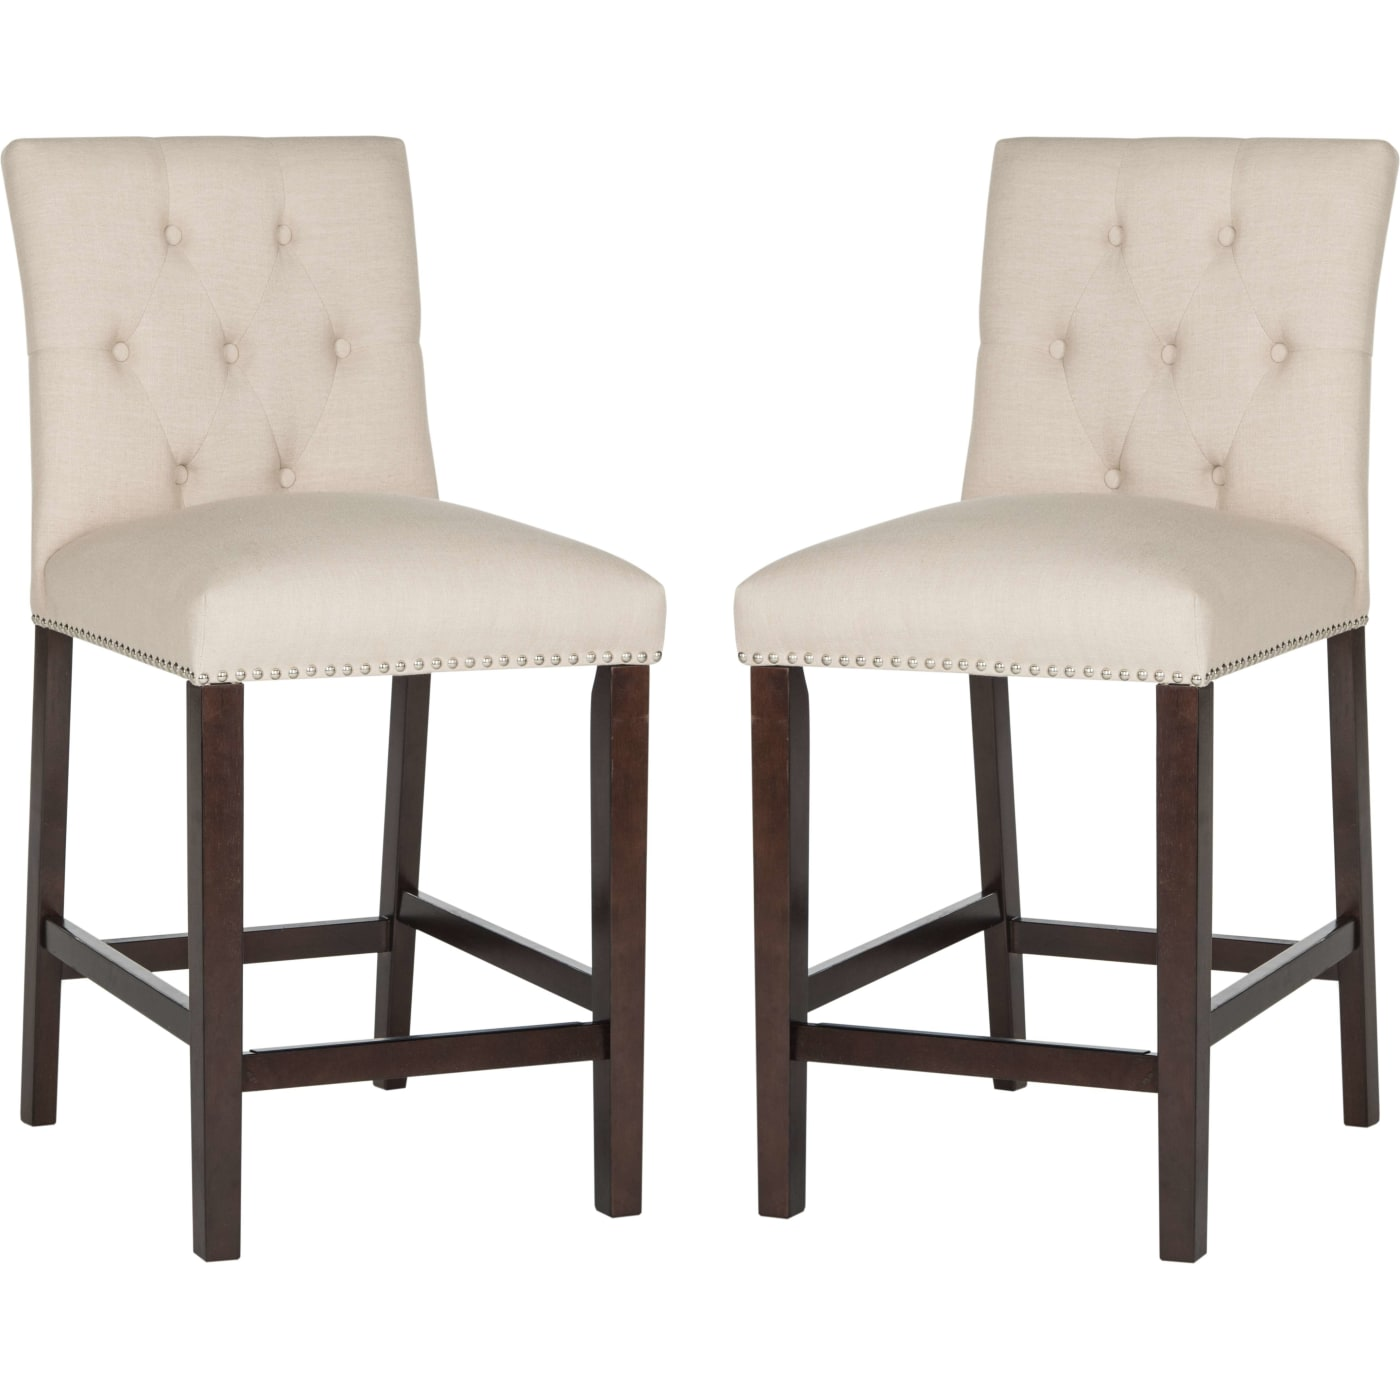 Safavieh Norah Beige Amp Espresso Counter Stool Set Of 2